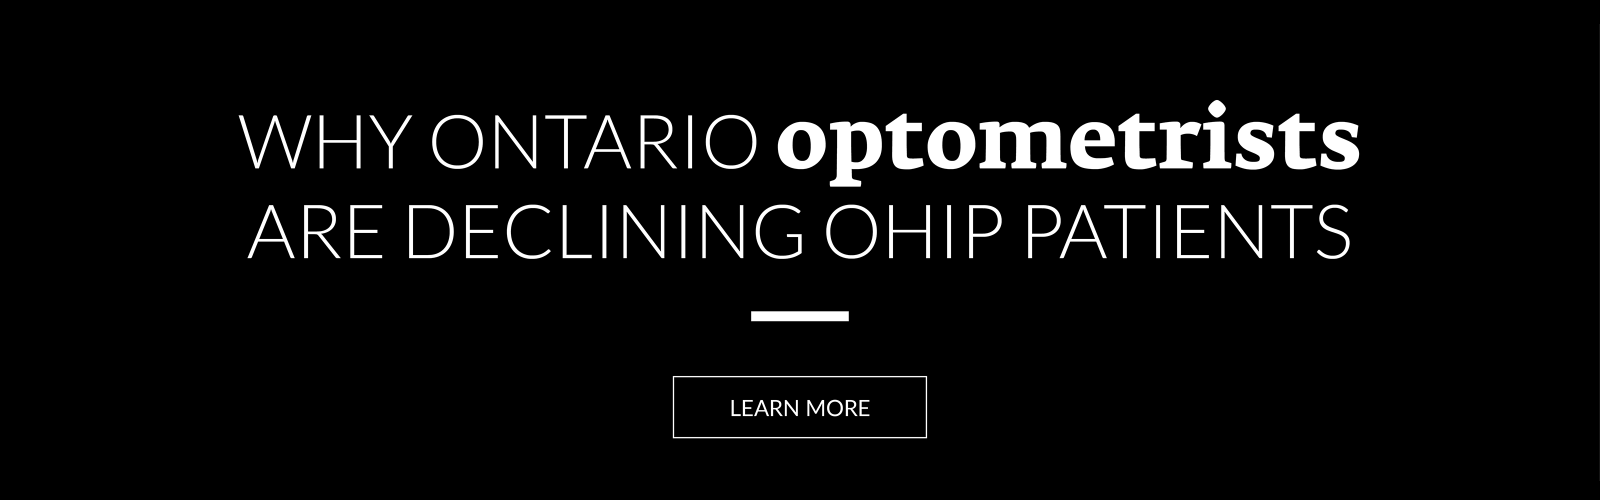 Why Ontario optometrists are declining OHIP patients